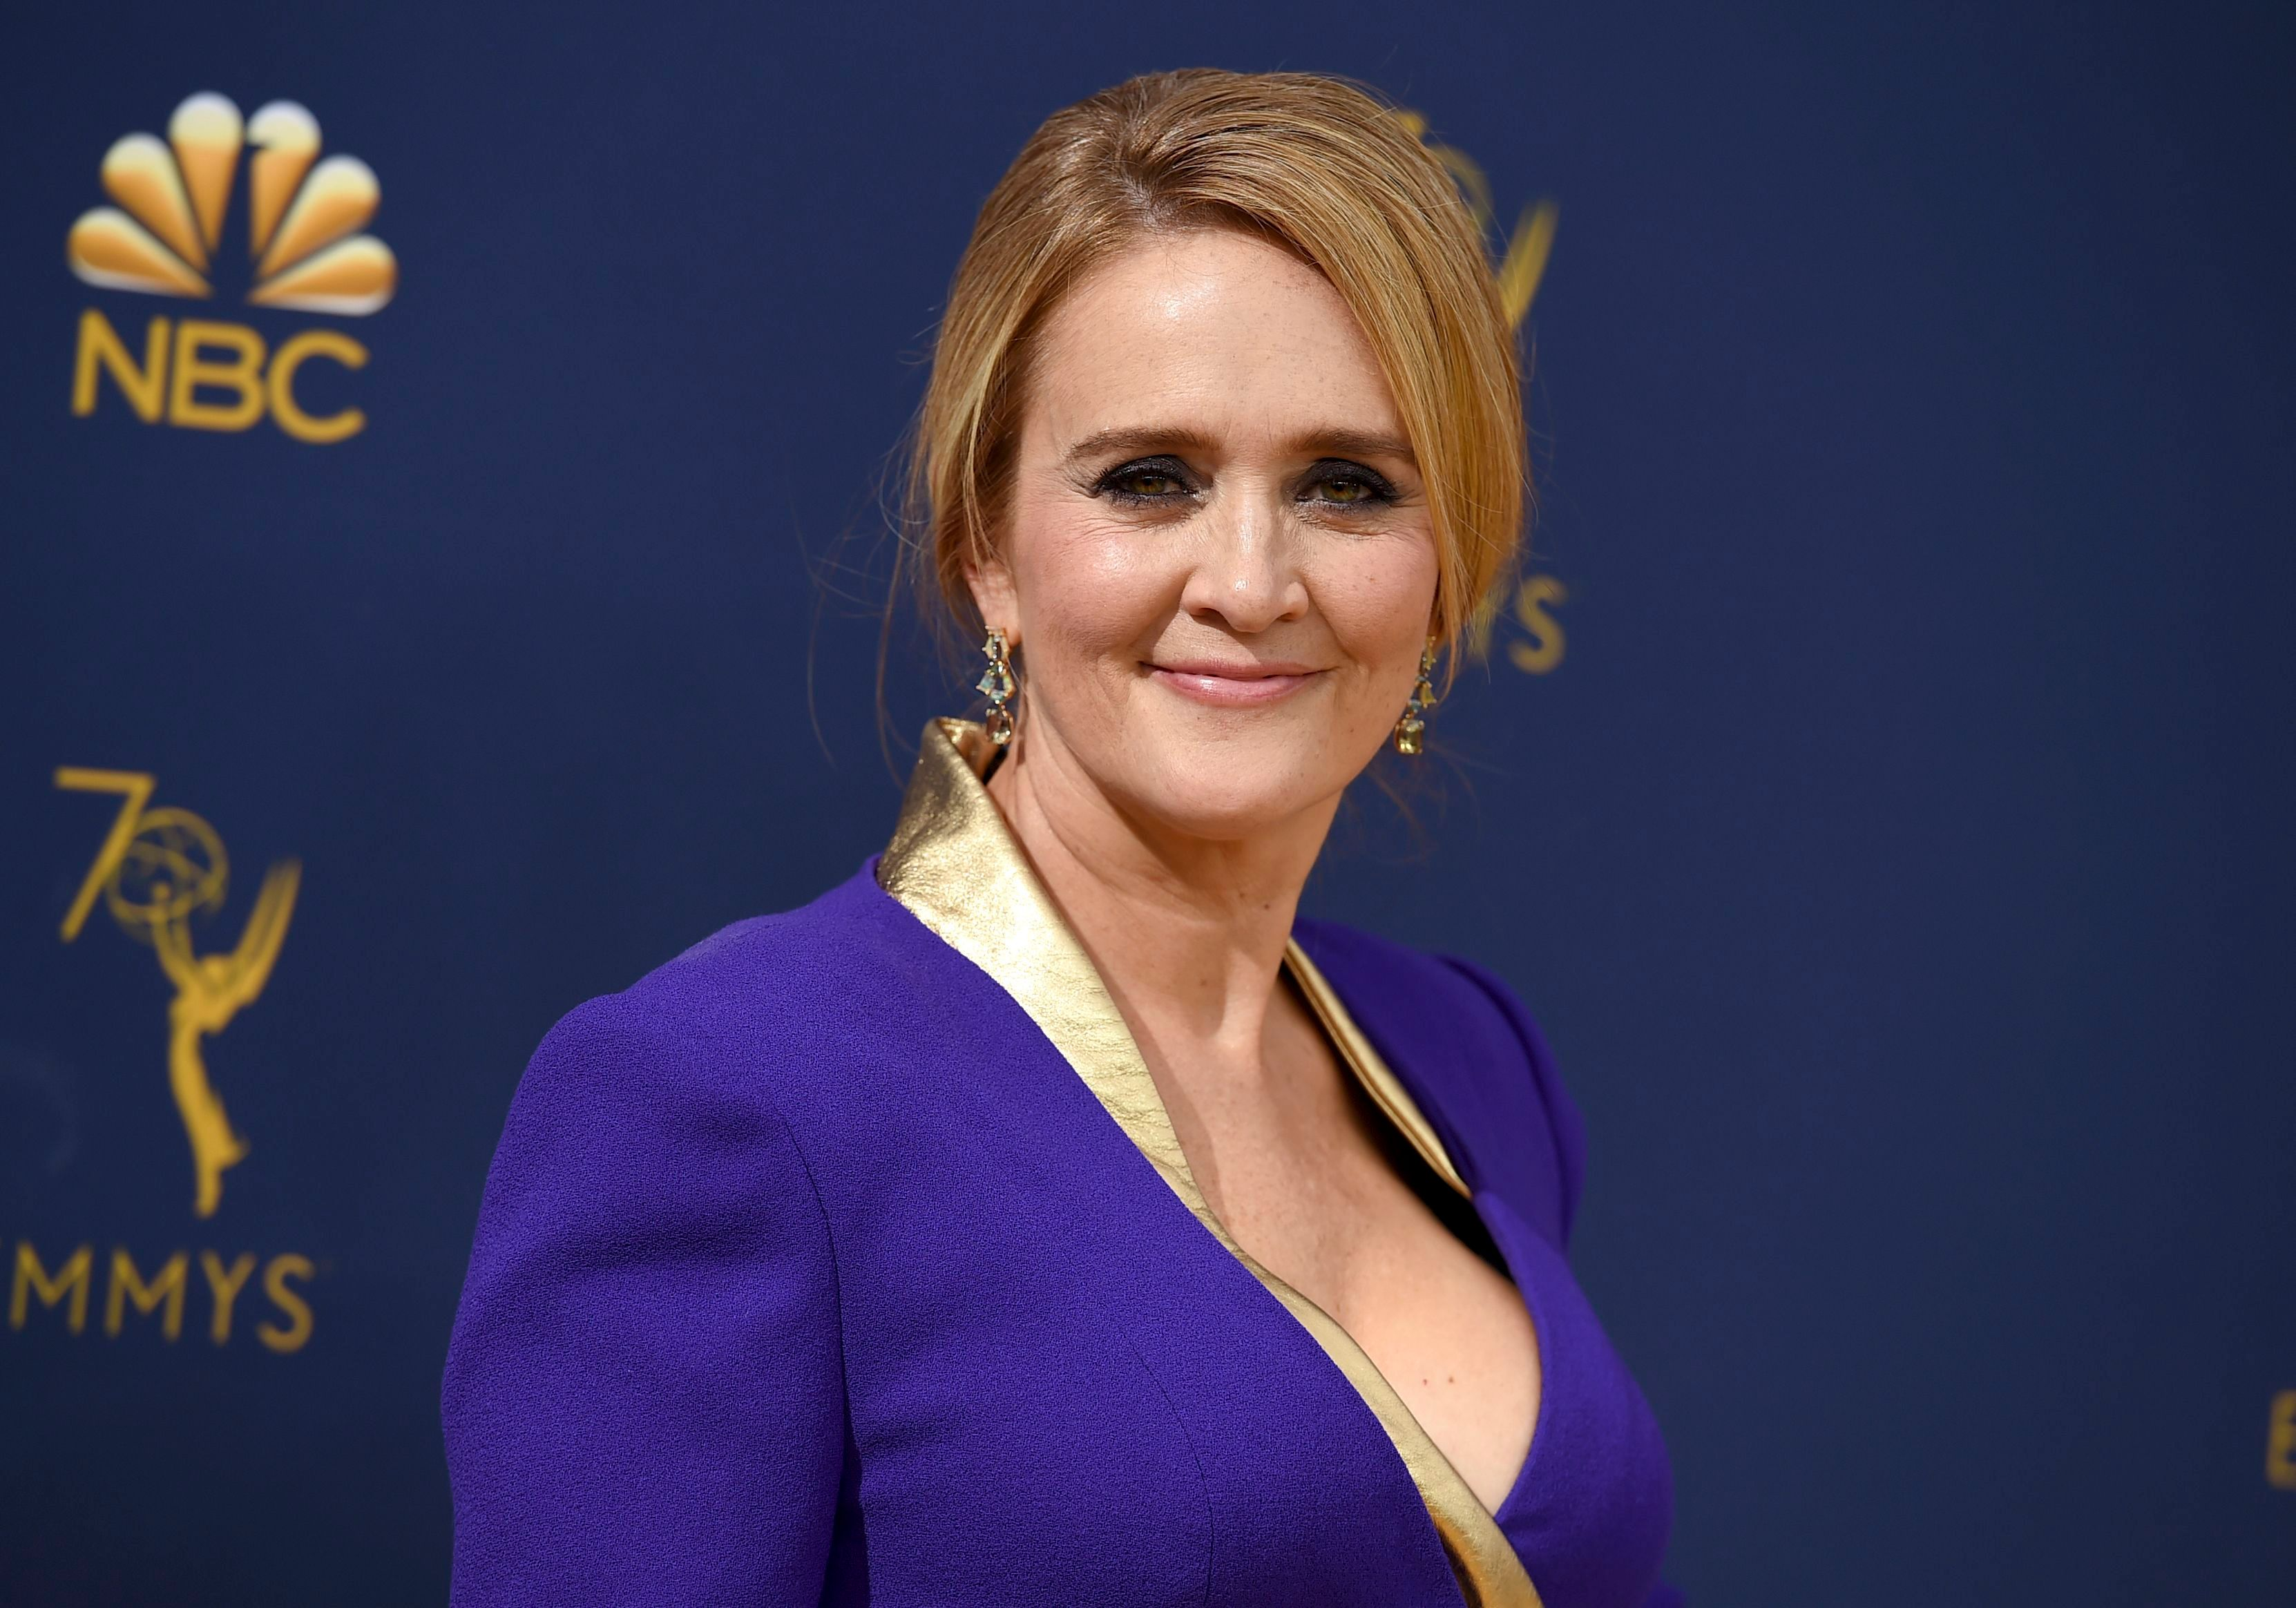 Samantha Bee Gets Honest About Comedy Central Not Wanting Her as 'Daily Show' Host: 'It Was Awful'